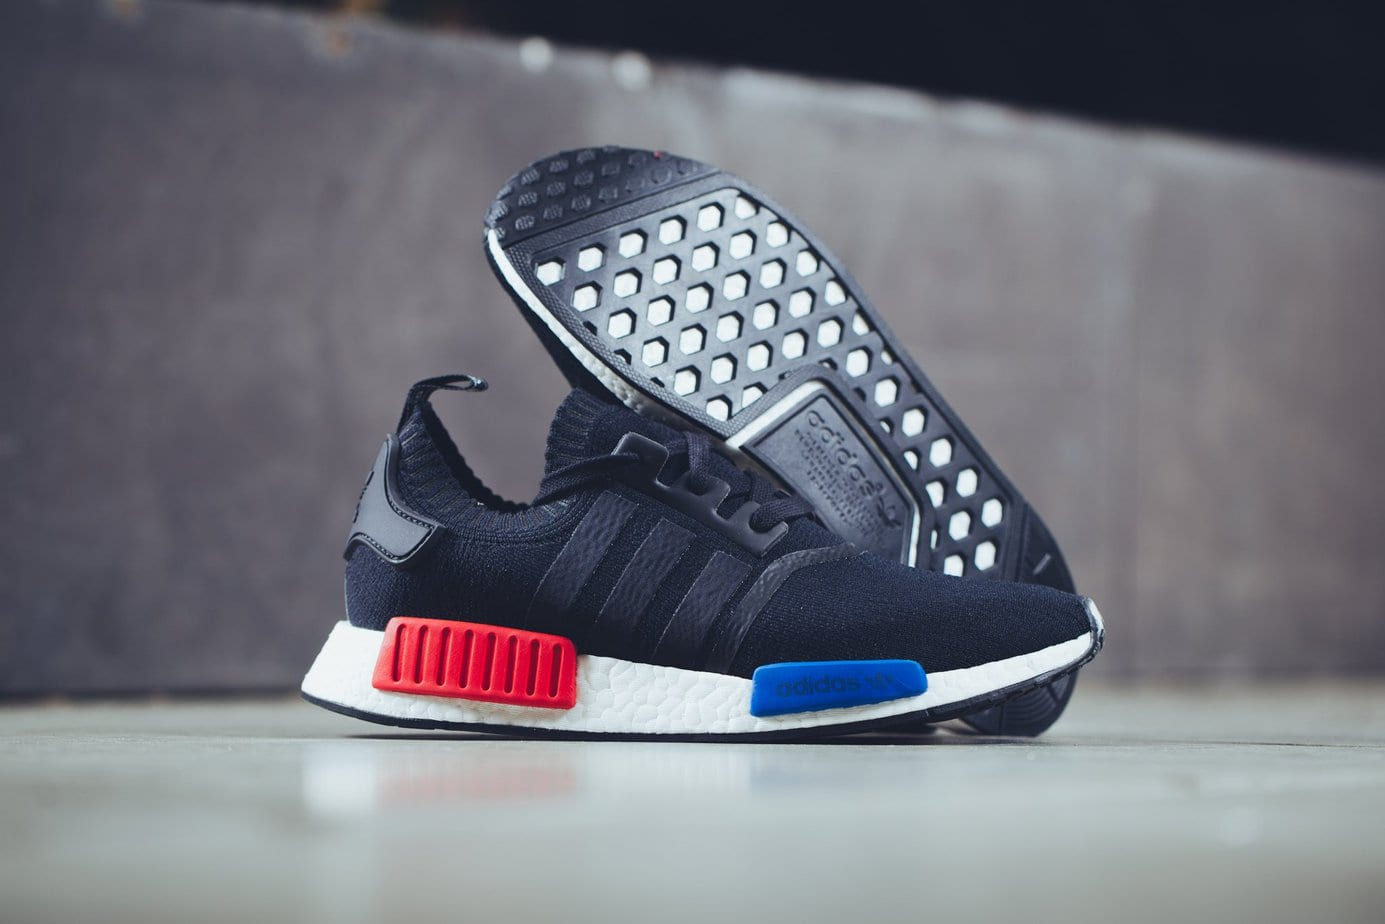 adidas NMD R1 Primeknit Black Japan SNEAKERS ADDICT